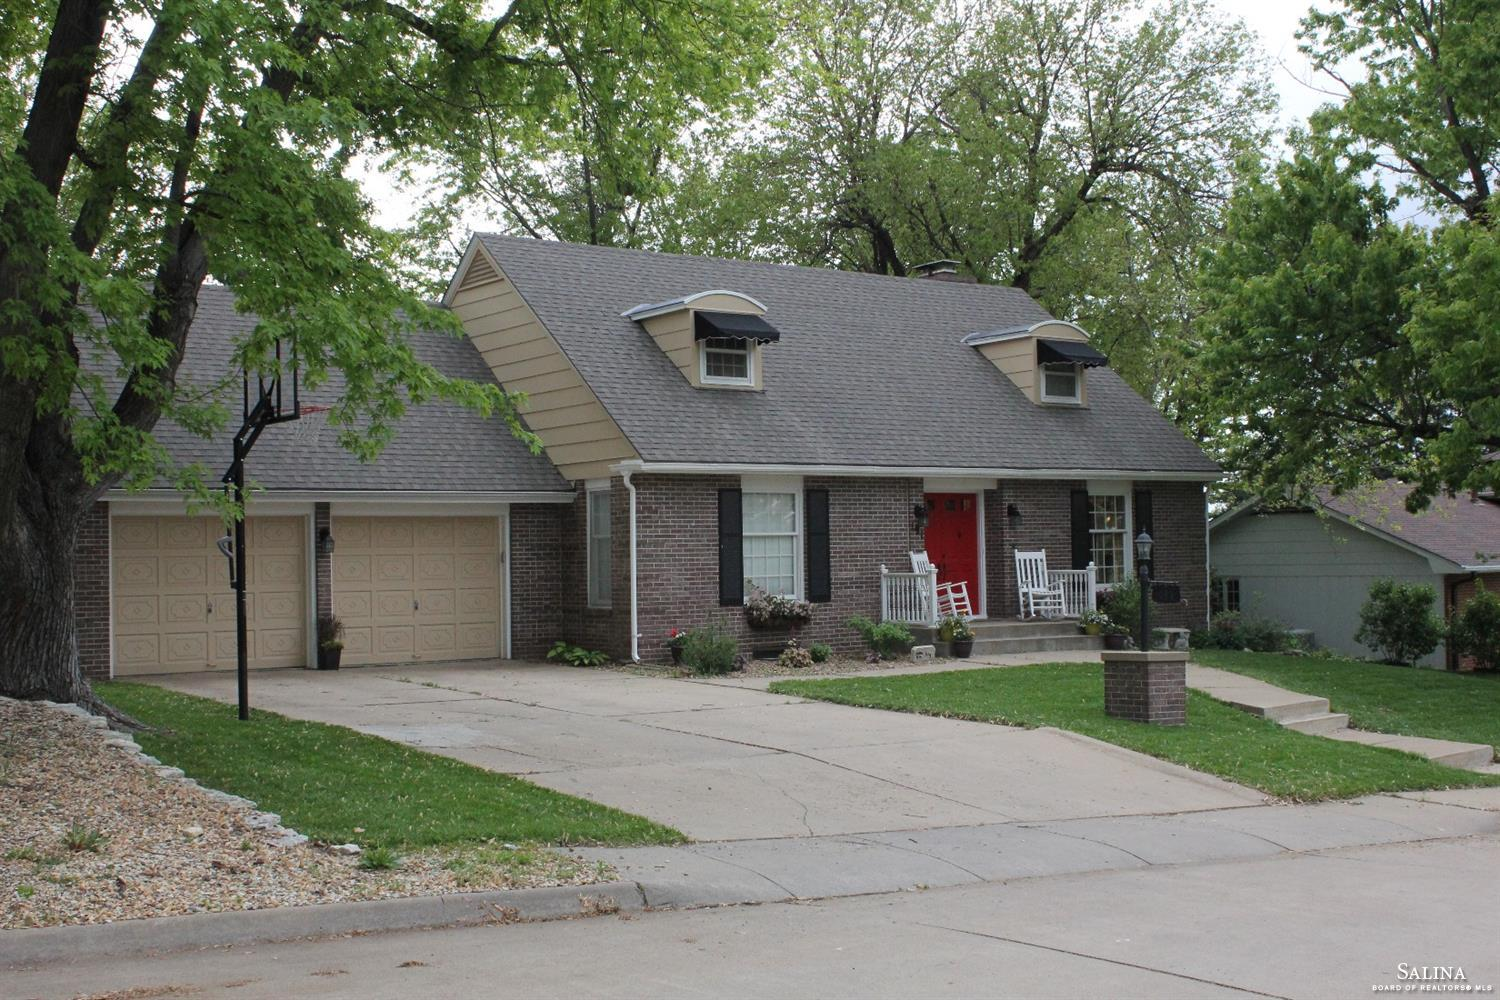 191 Millview Road, Salina, KS 67401